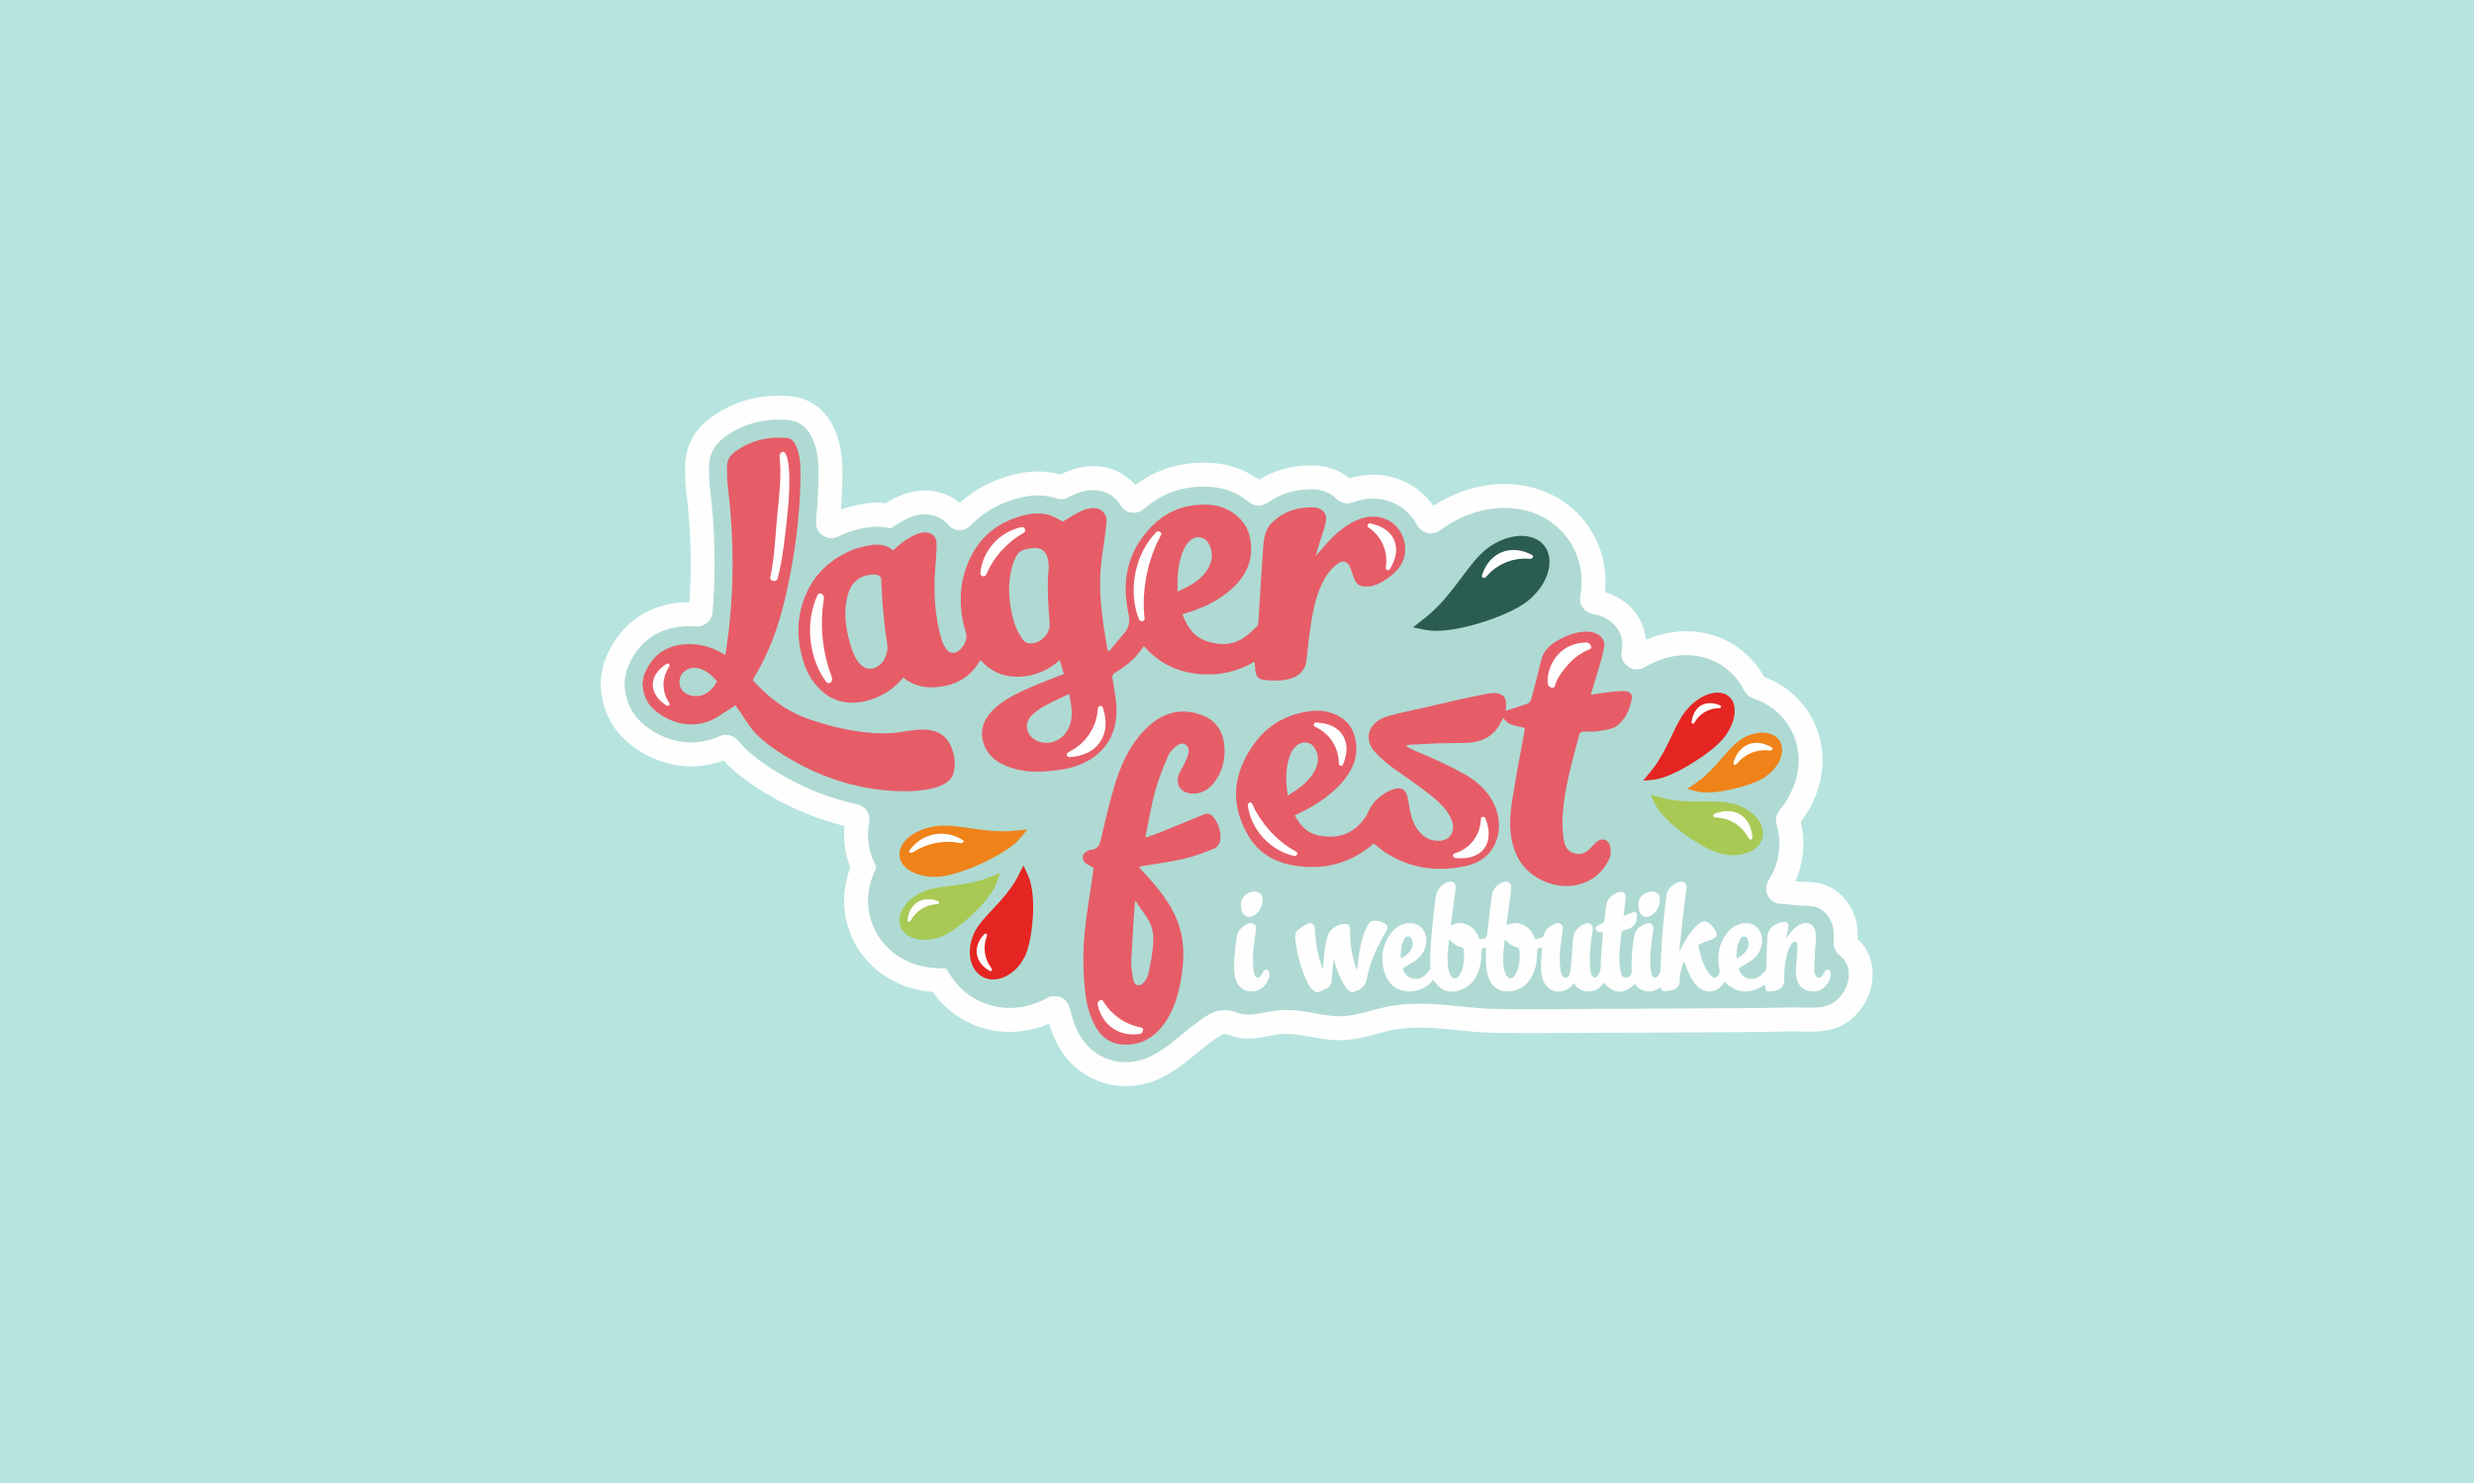 lagerfestfullscreenblue